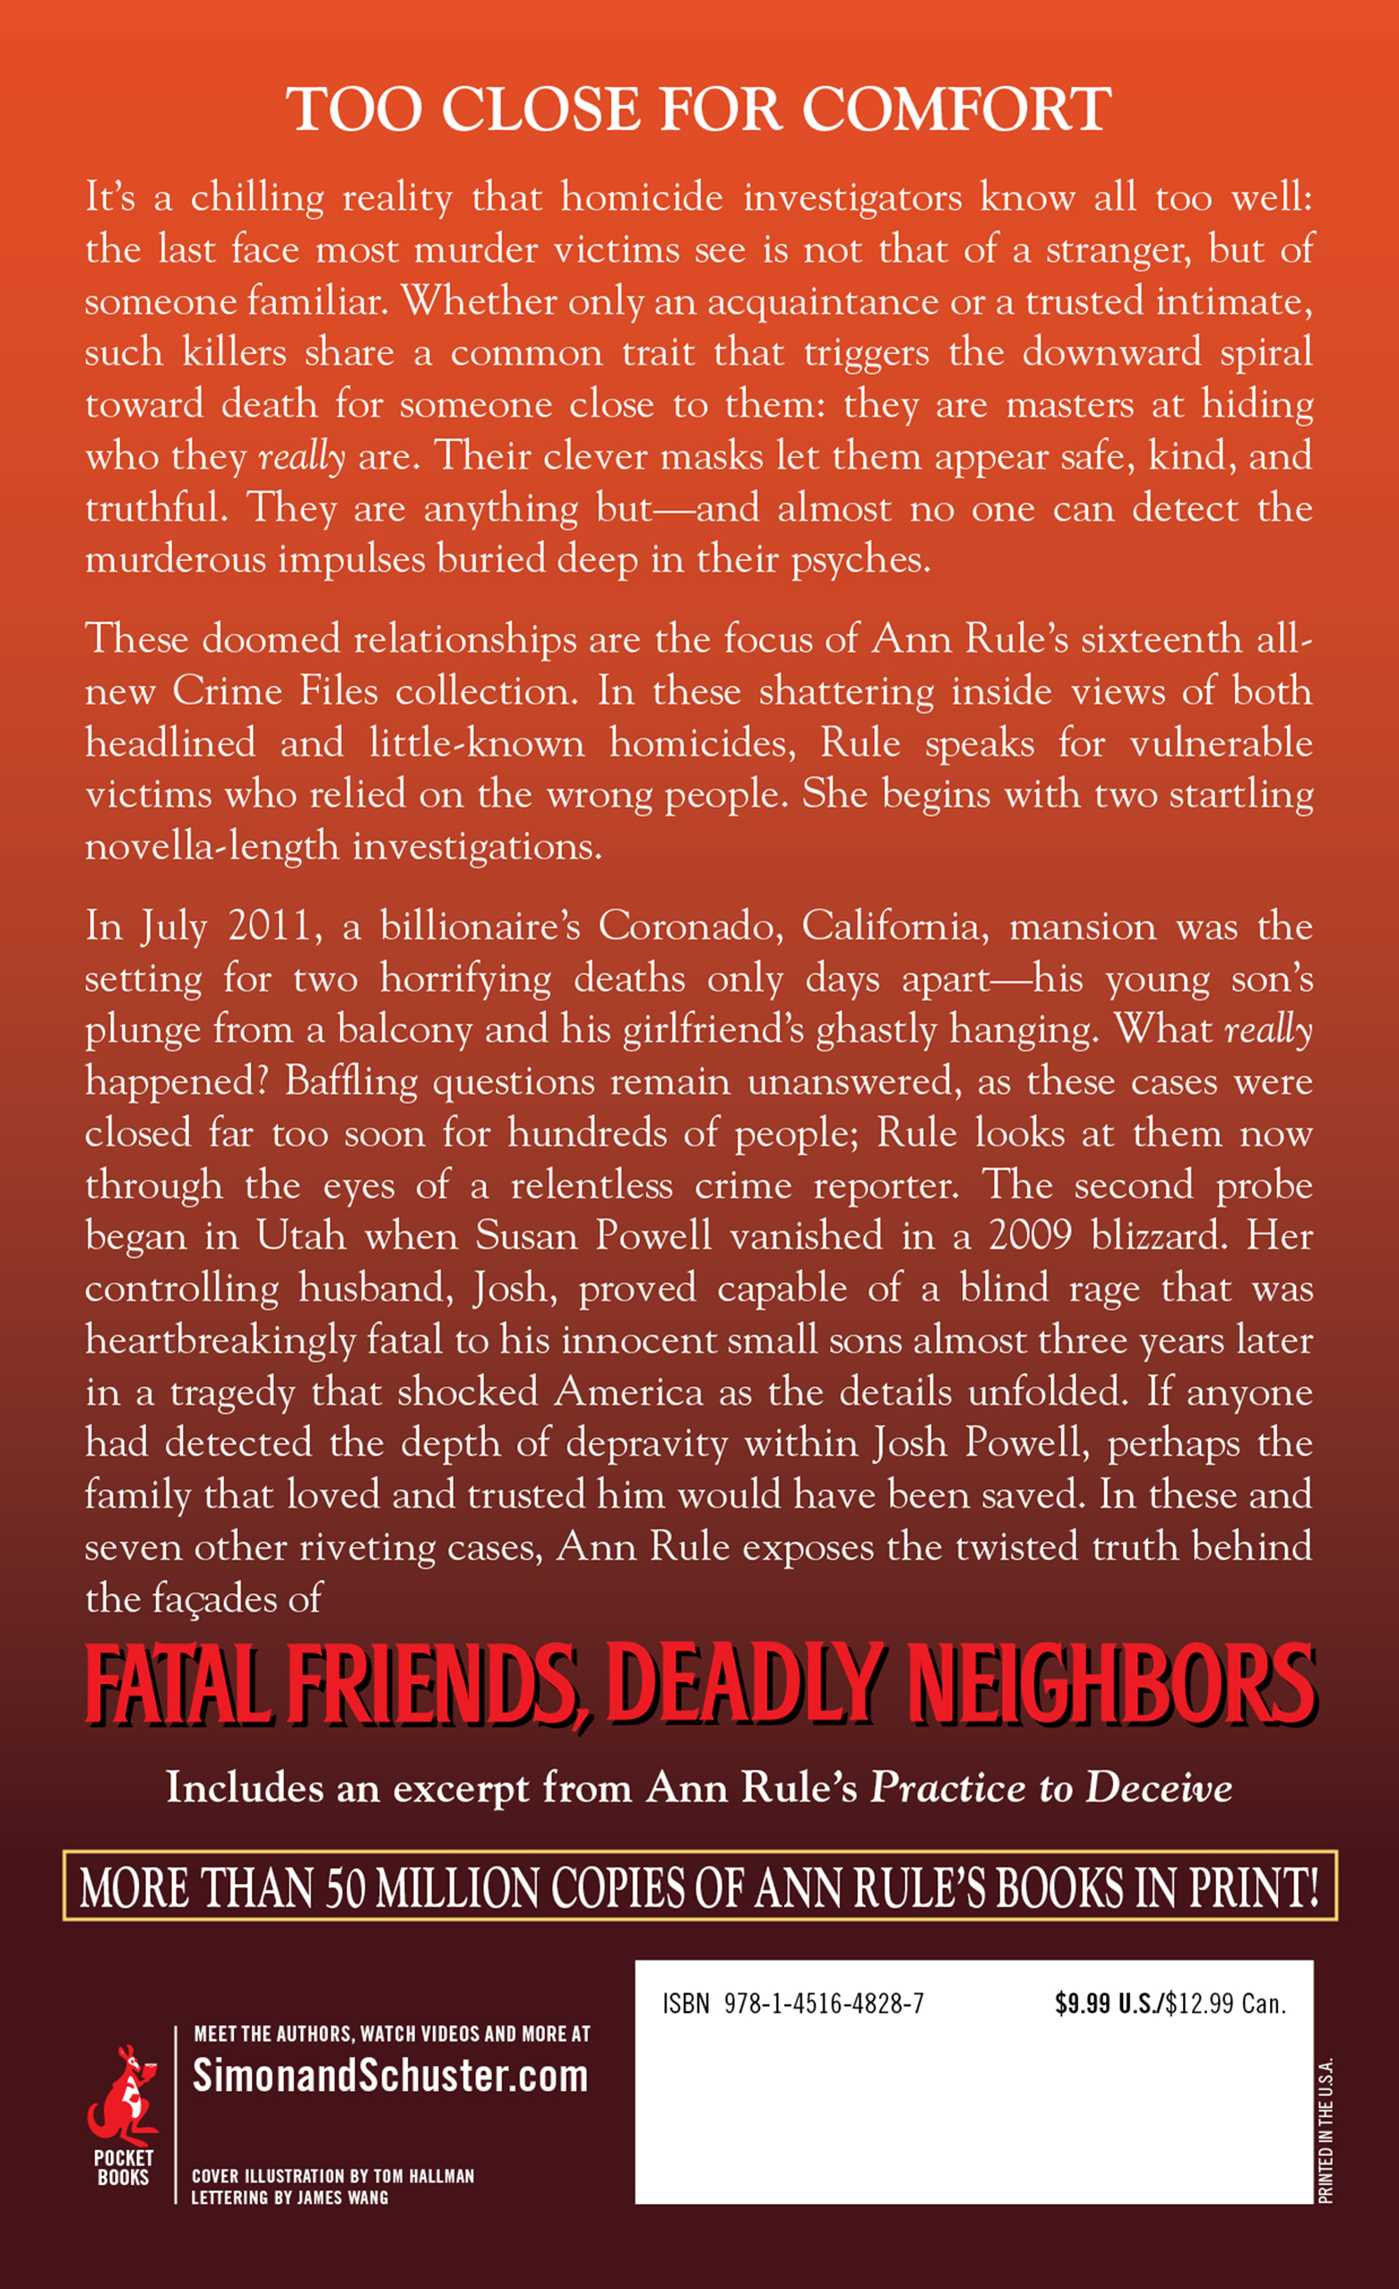 Fatal friends deadly neighbors 9781451648287 hr back